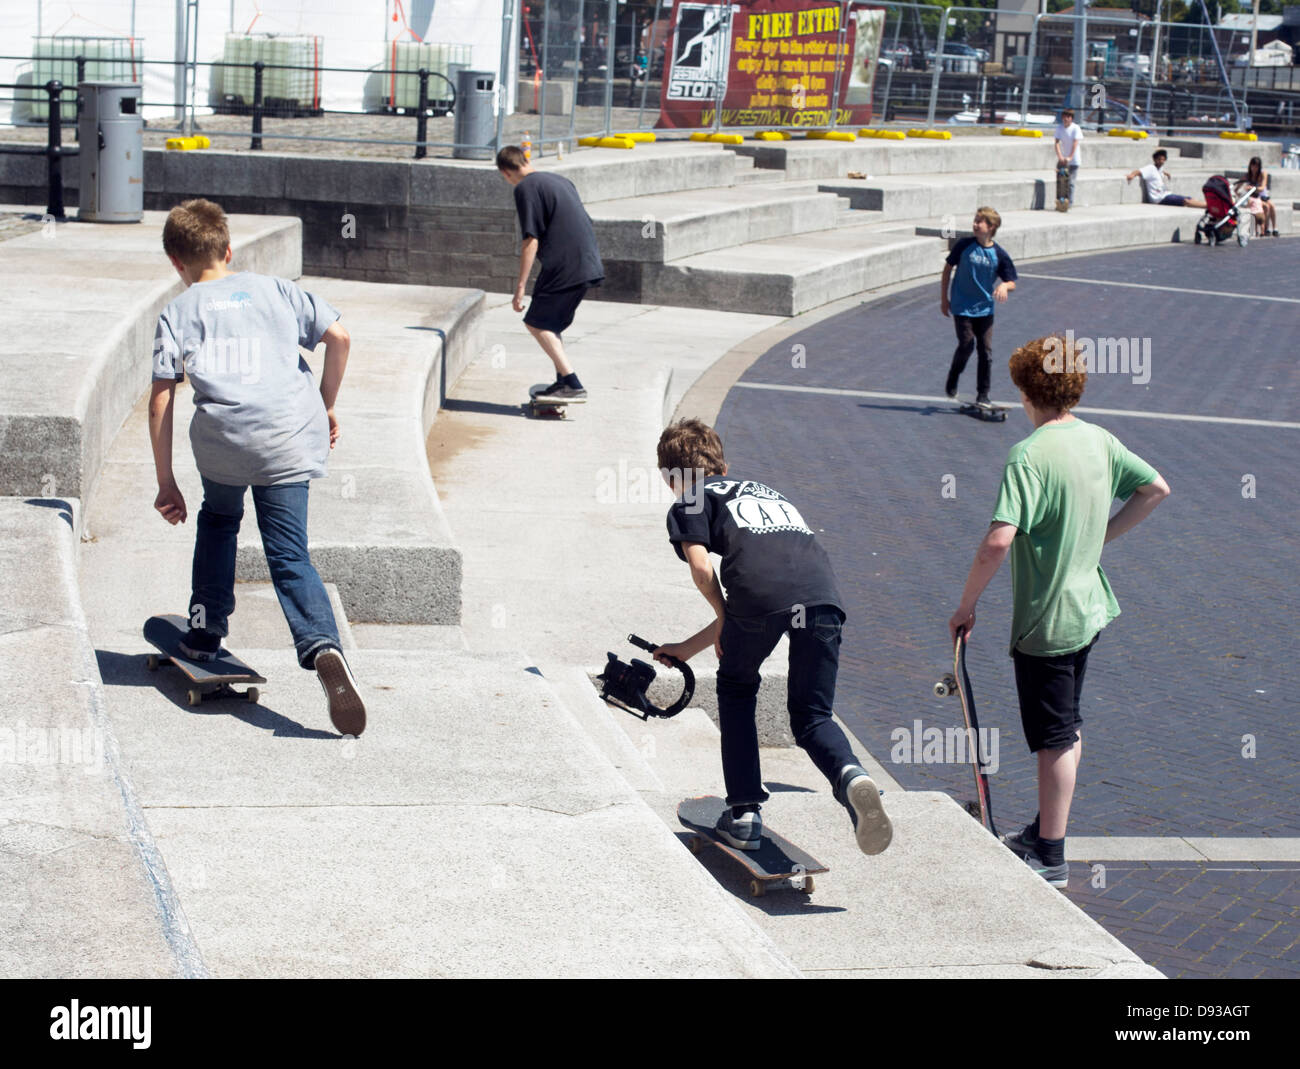 Kids skateboarding on waterfront Bristol - Stock Image